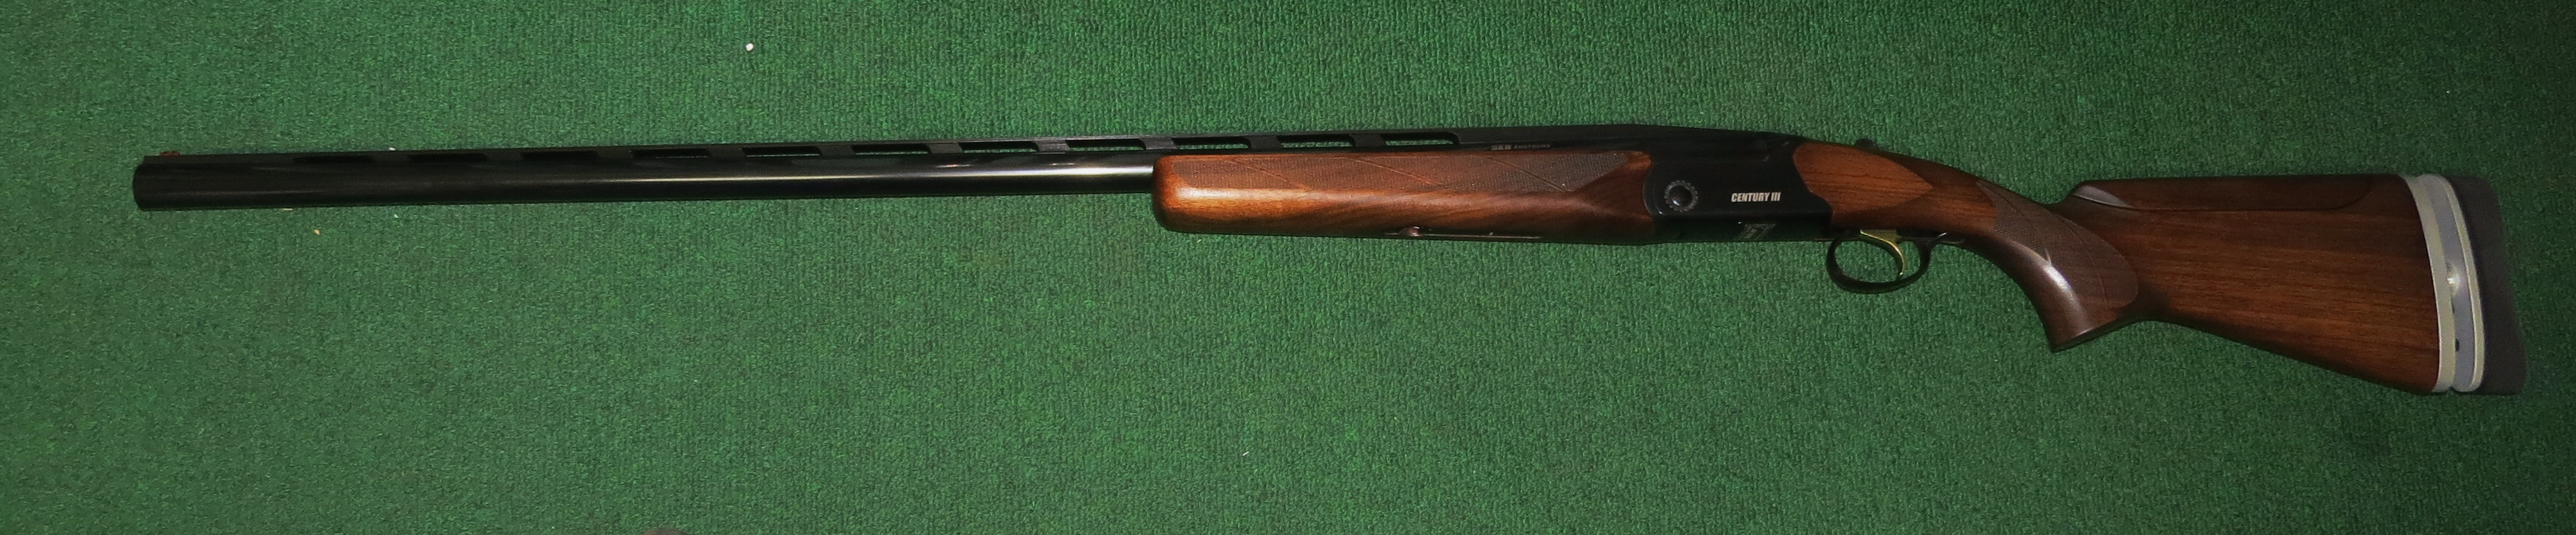 For Sale - SKB Century III Trap AC F/S   Trap Shooters Forum